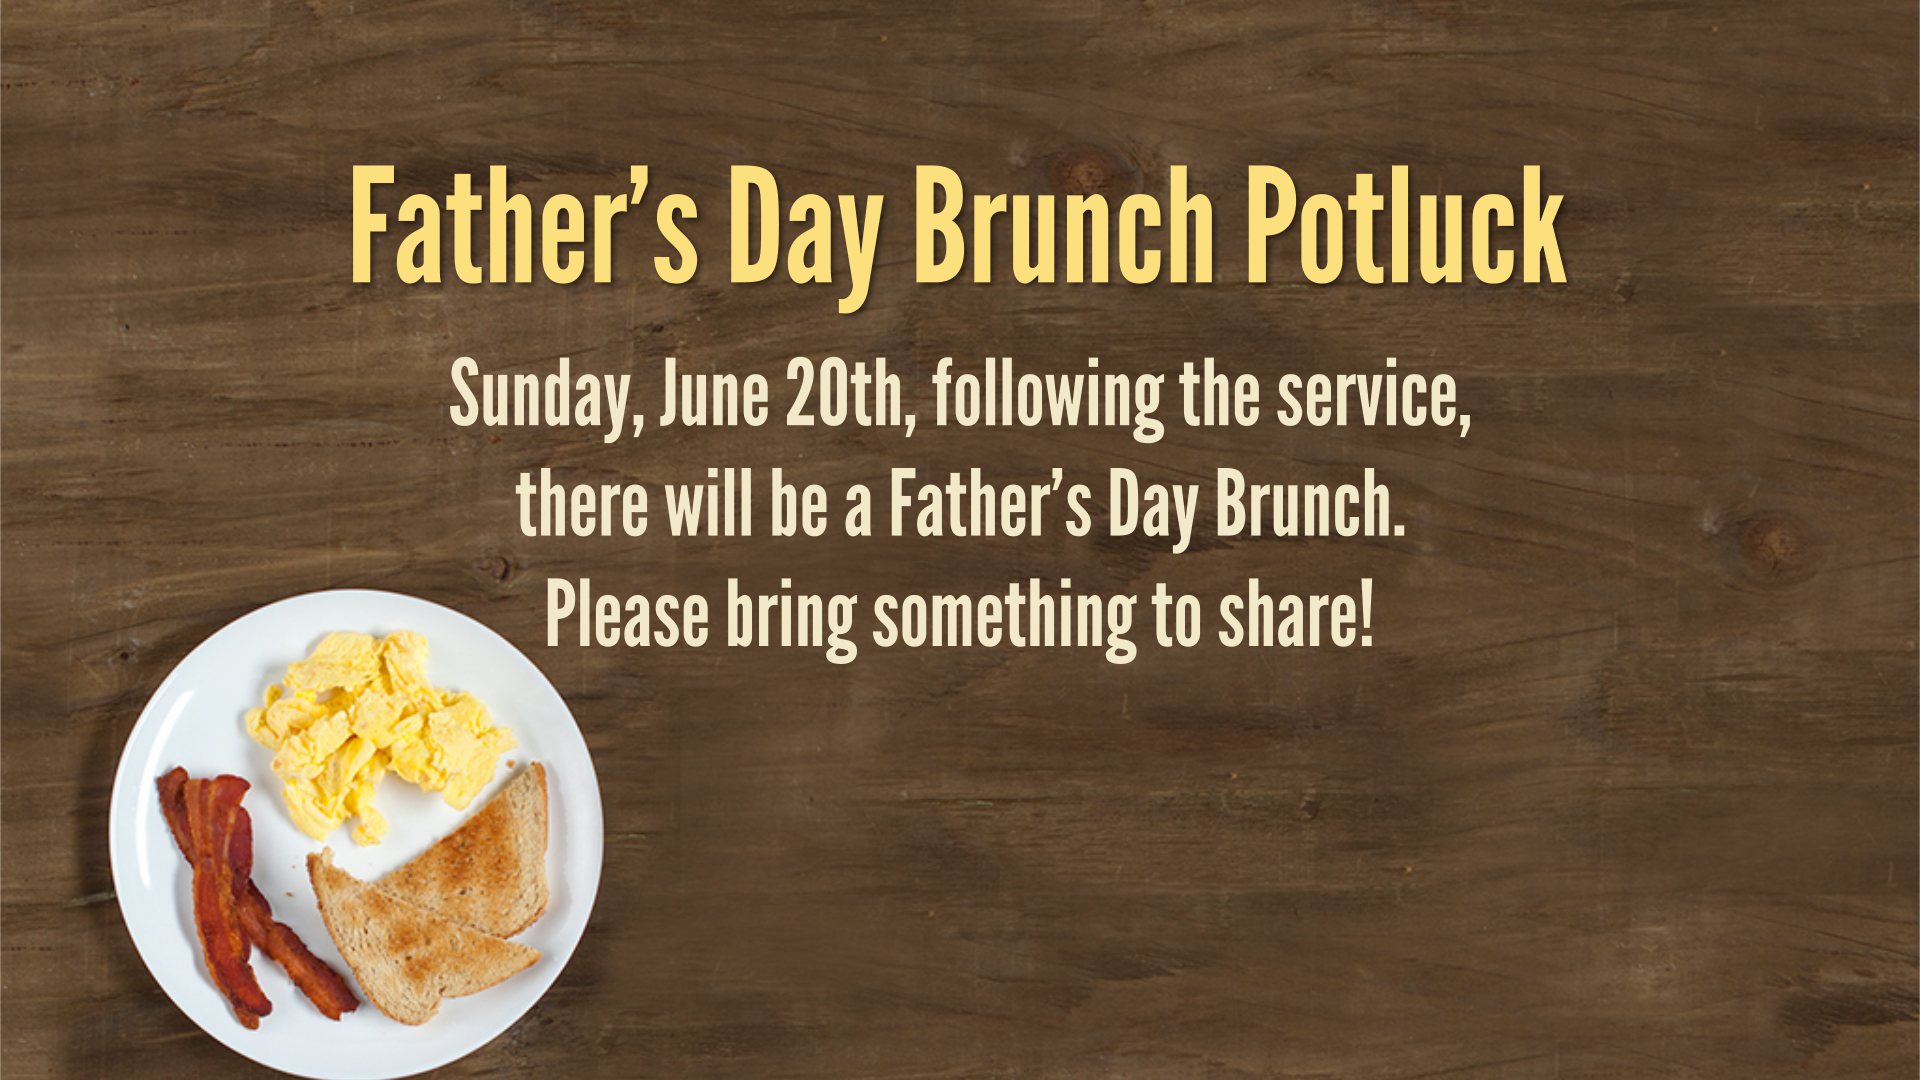 Father's Day Brunch Potluck